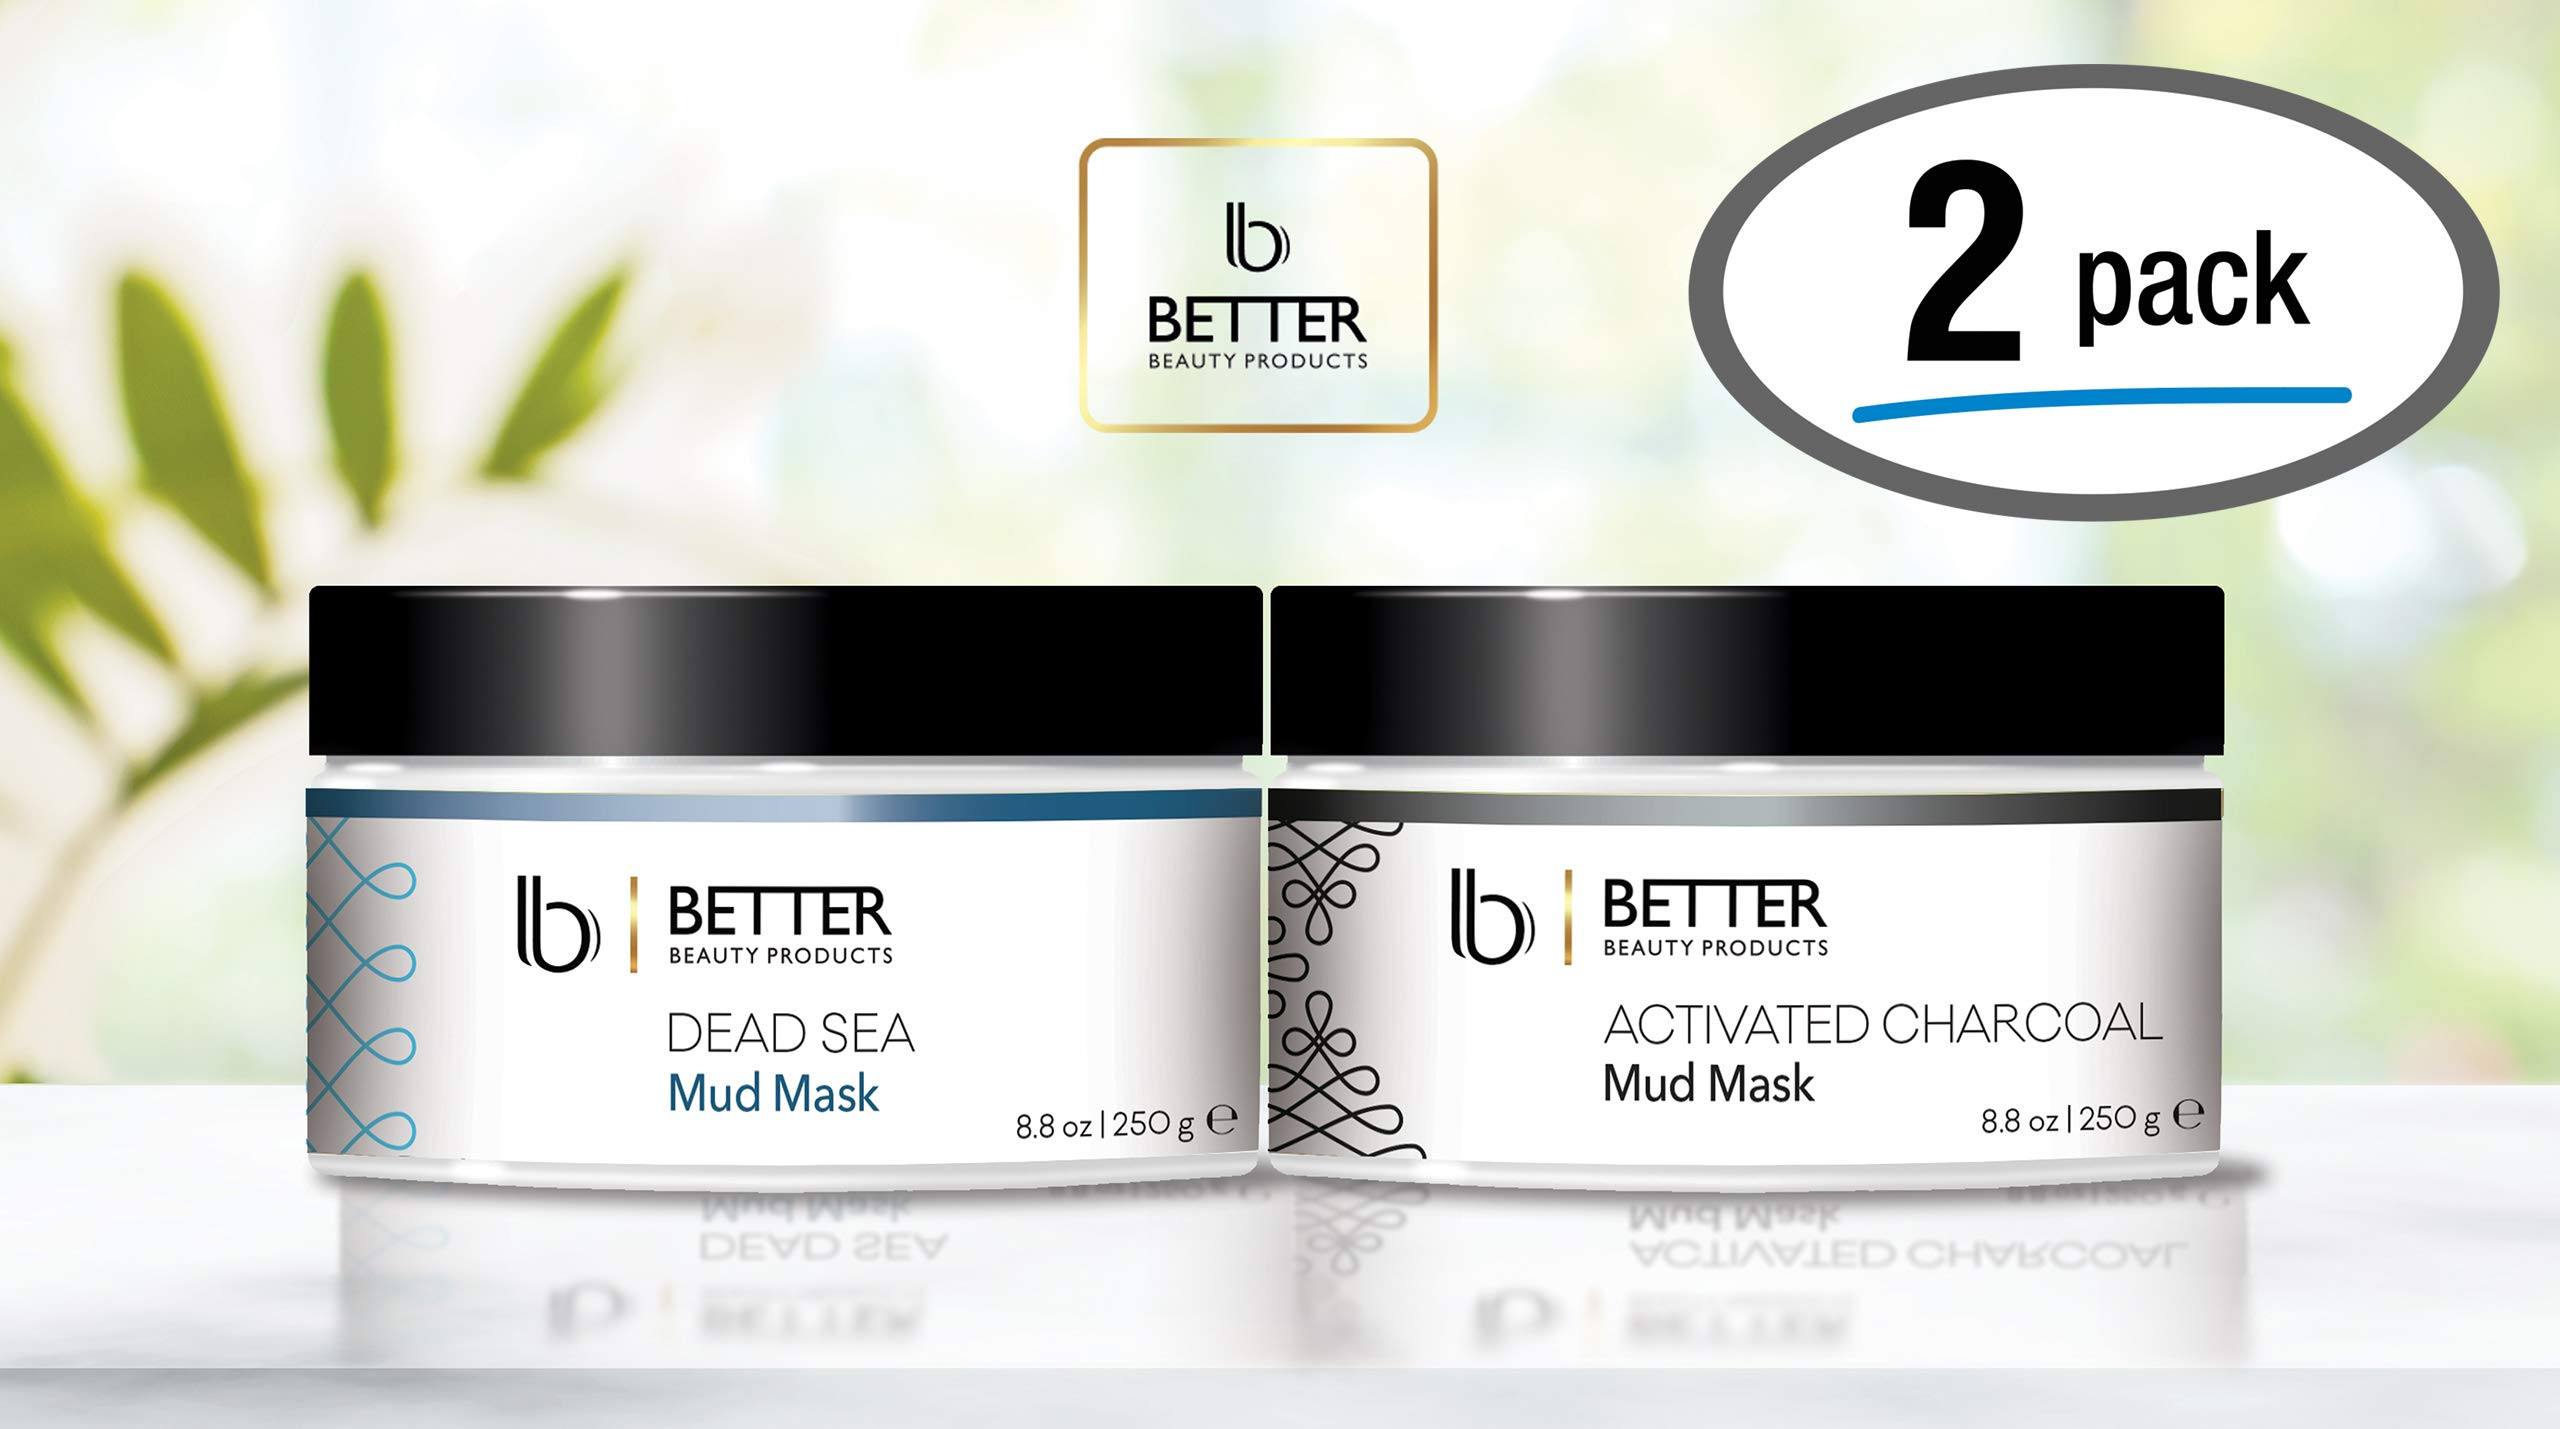 2 Pack Face and Body Masks by Better Beauty Products, Dead Sea Mud Mask and Activated Charcoal Mask, 8.8 oz, Two For One Great Value